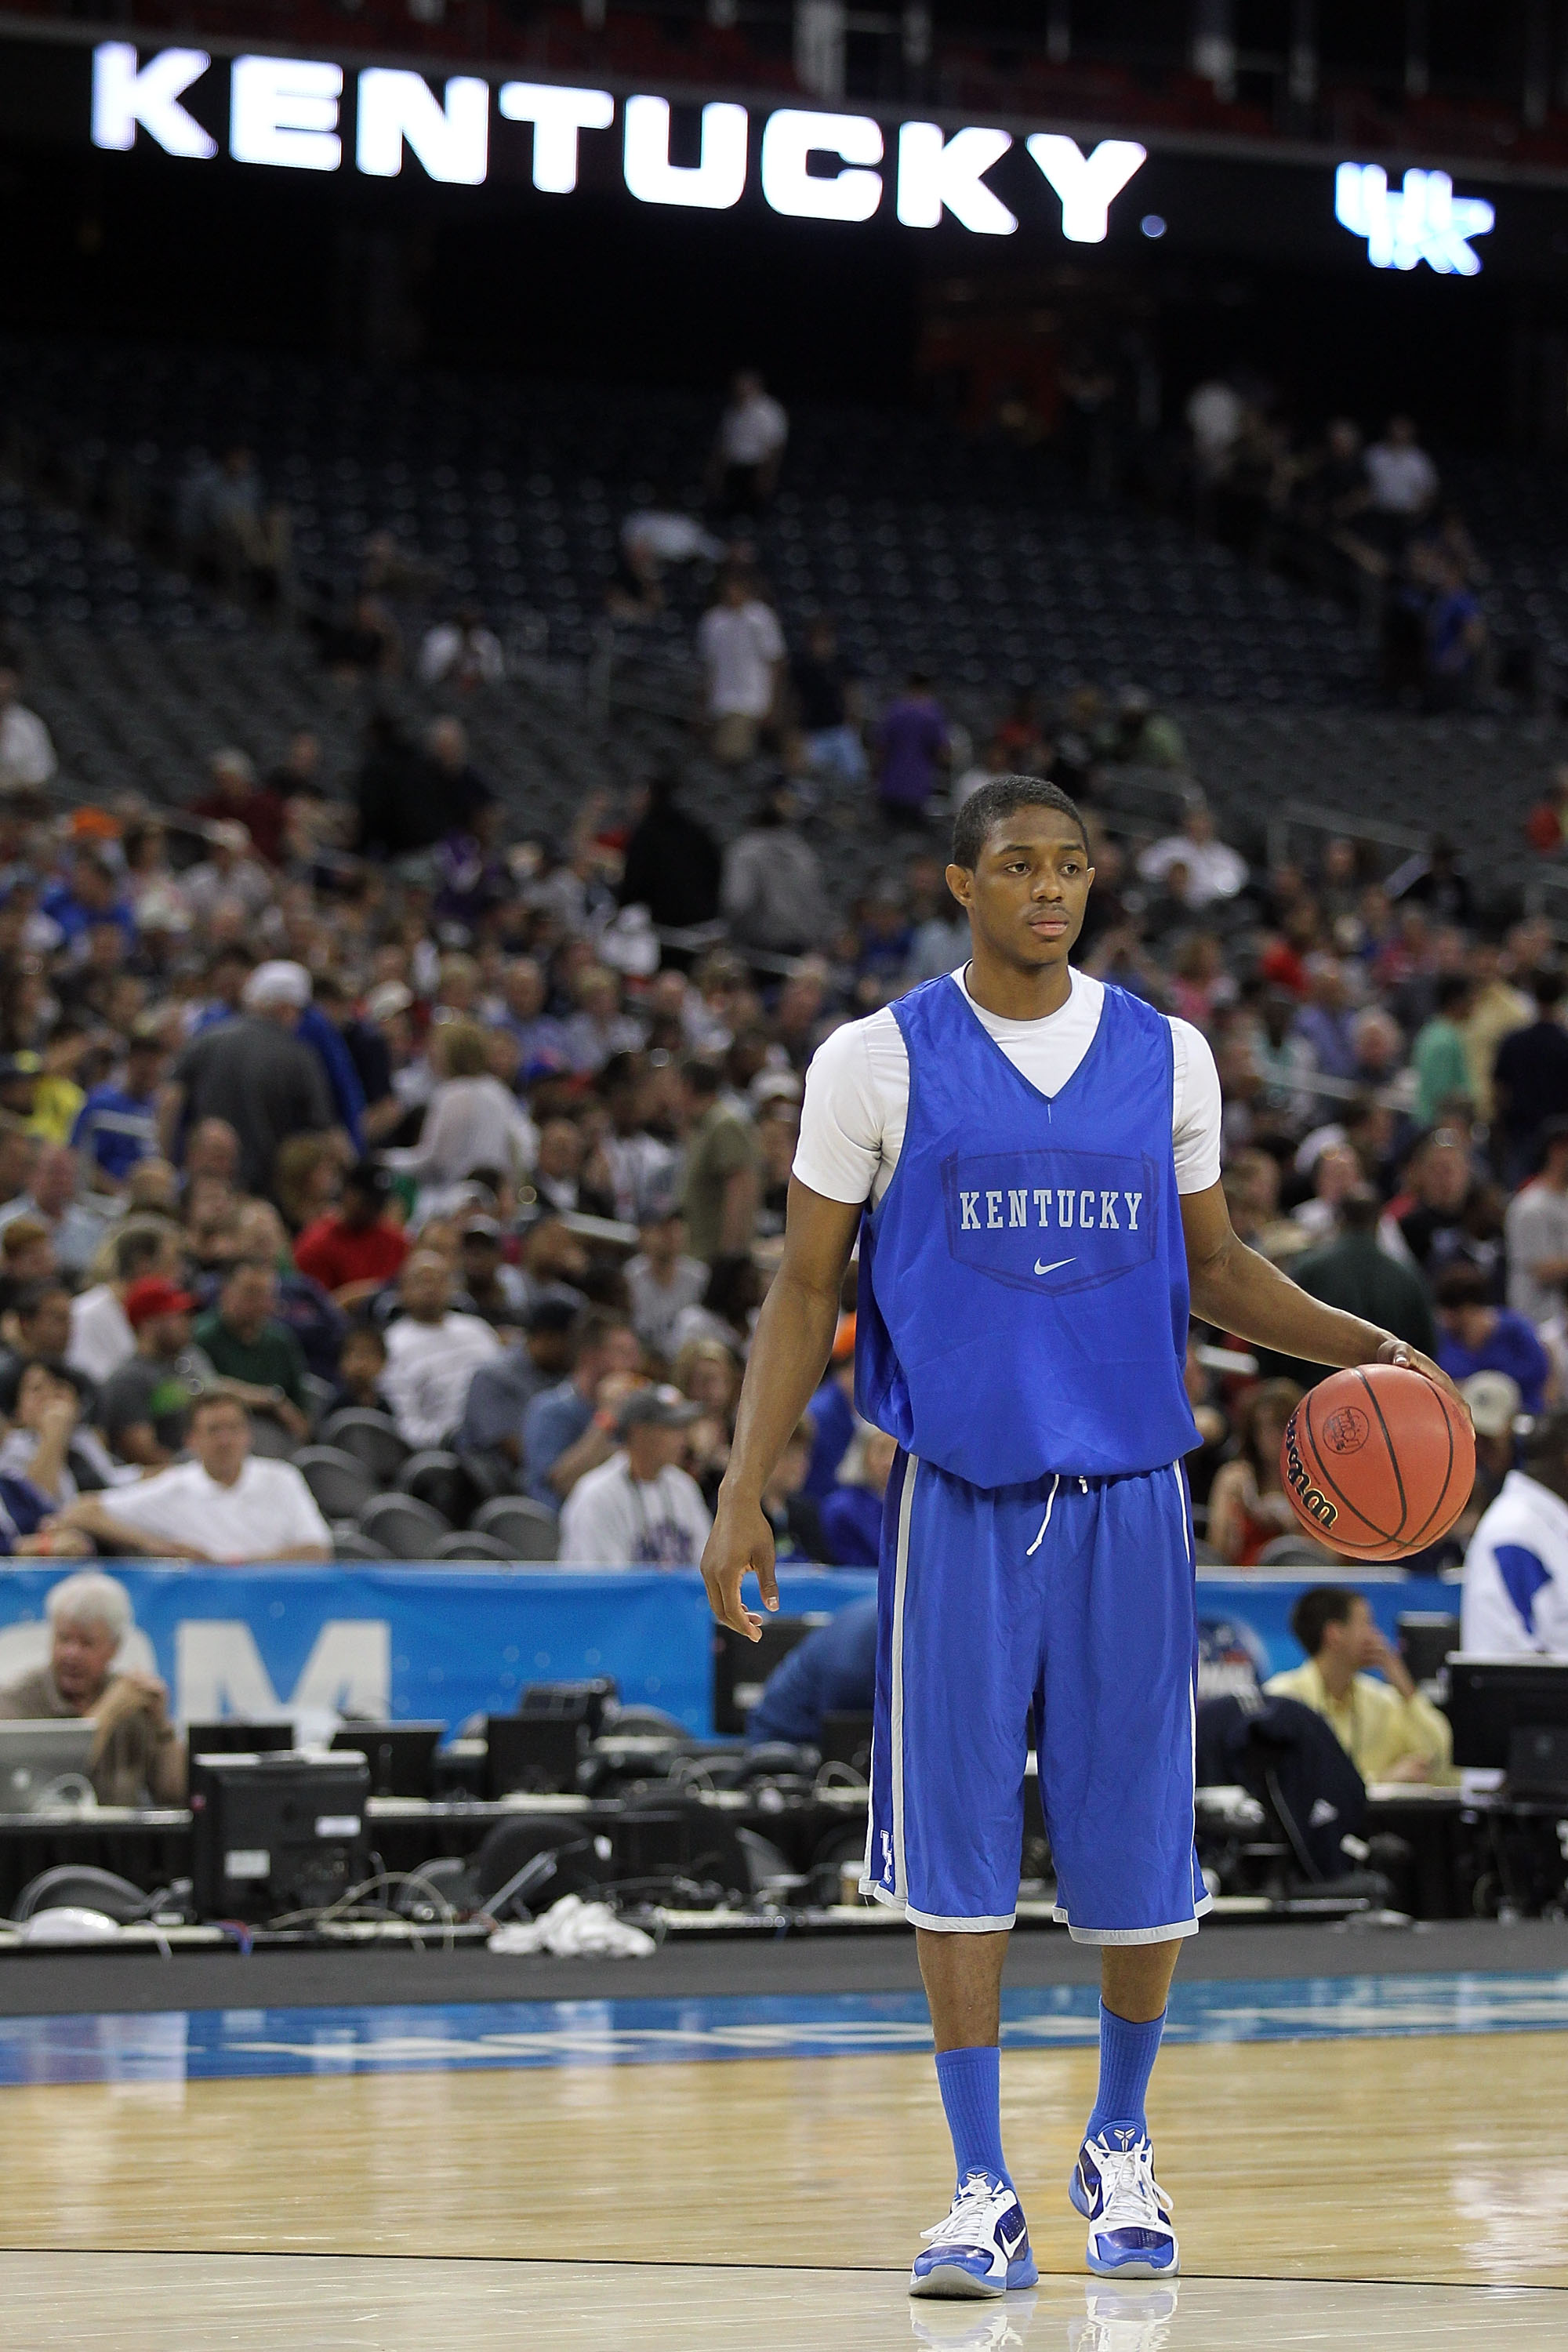 HOUSTON, TX - APRIL 01:  Brandon Knight #12 of the Kentucky Wildcats looks on during practice prior to the 2011 Final Four of the NCAA Division I Men's Basketball Tournament at Reliant Stadium on April 1, 2011 in Houston, Texas.  (Photo by Andy Lyons/Gett